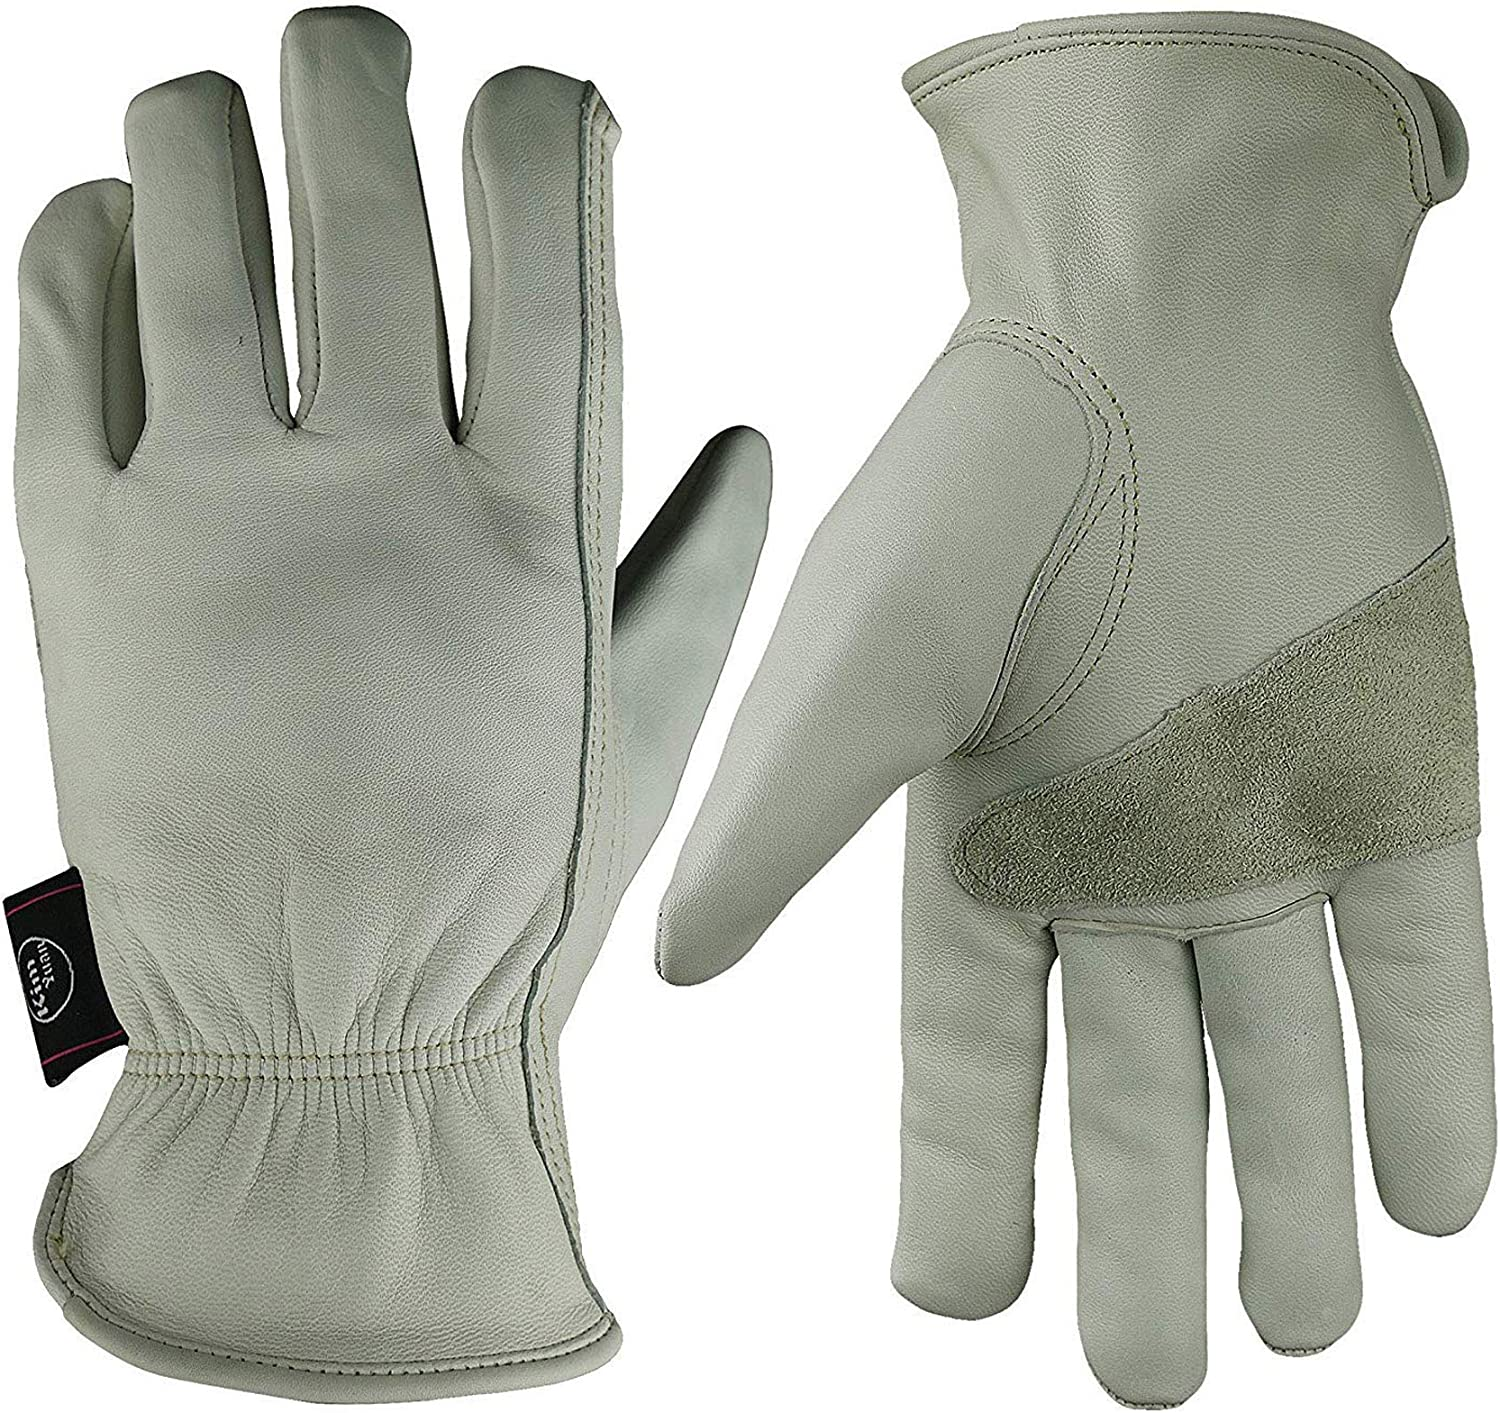 KIM YUAN Leather Work Los Angeles Mall Gloves Garden Max 50% OFF Cowhide Yard Grain for